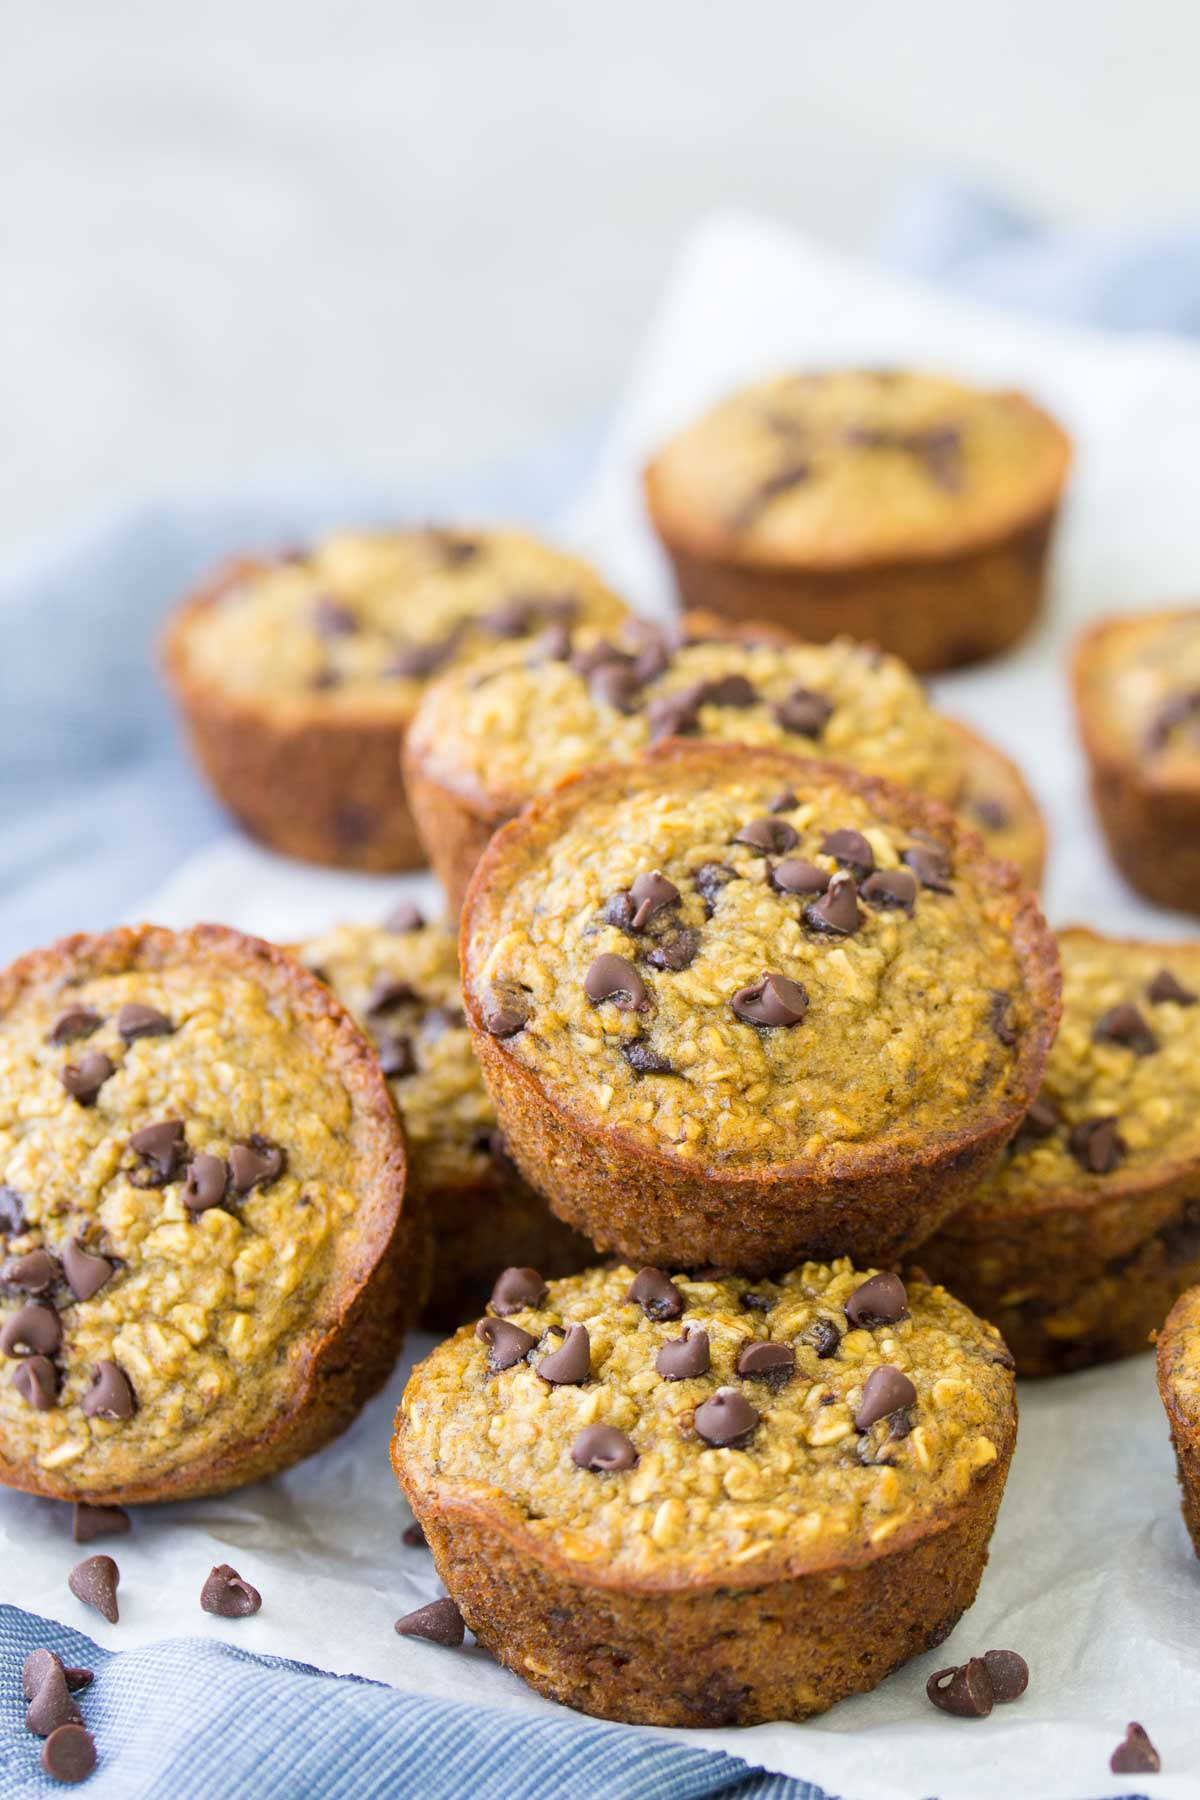 These flourless Healthy Blender Banana Muffins are dairy-free and gluten-free. They are quick and easy to make in your blender! These healthy muffins freeze well for meal prep breakfasts and snacks!